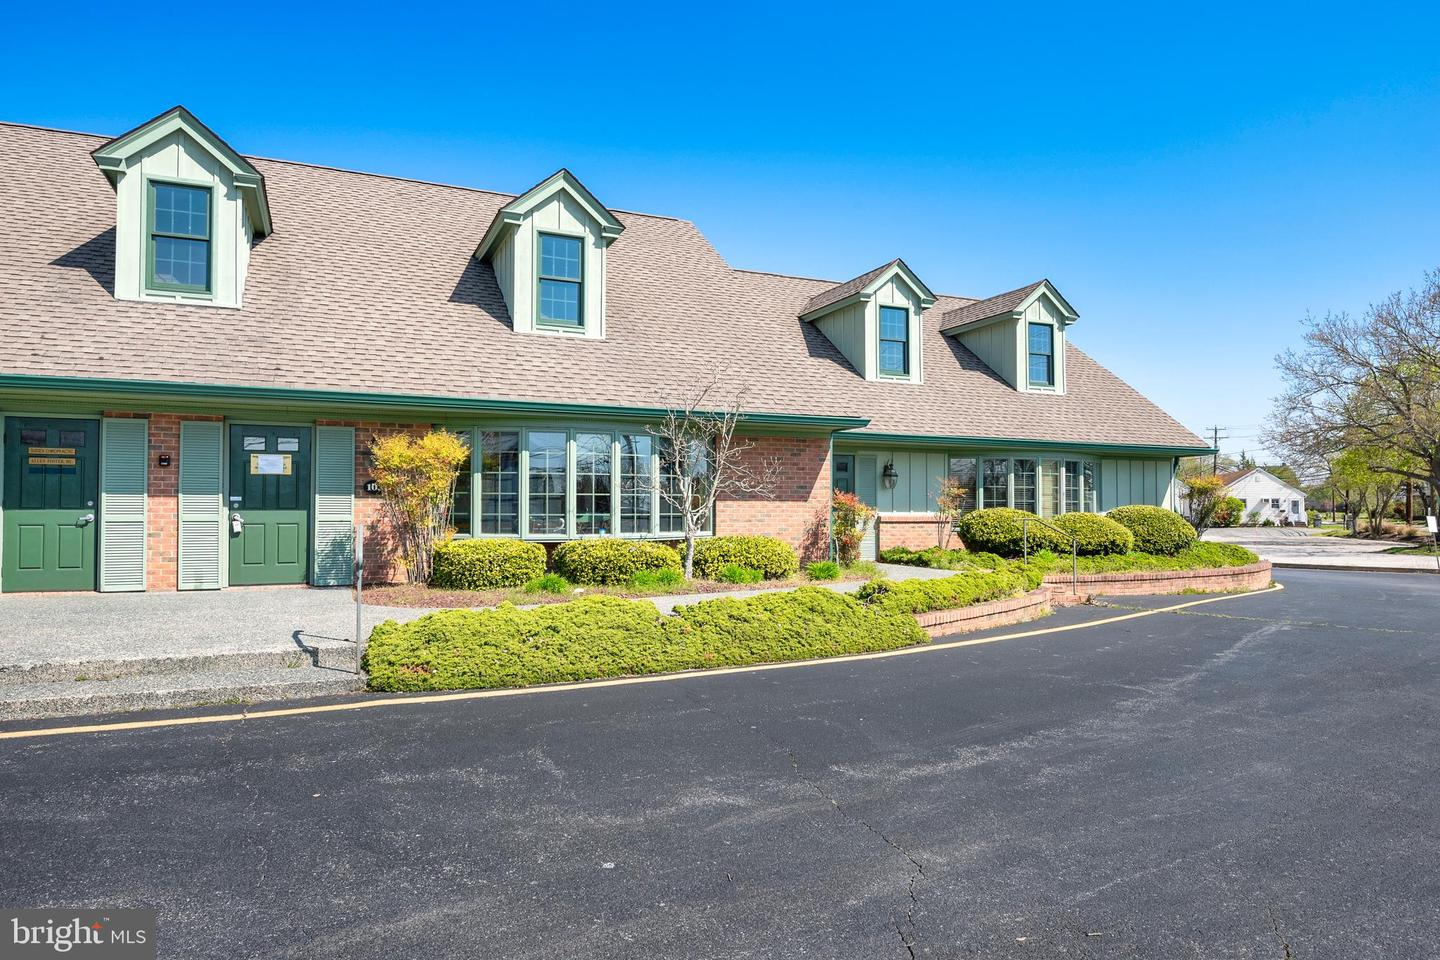 DESU152940-304103033979-2020-07-09-17-38-42 750 Kings Hwy #3 & 4 | Lewes, DE Real Estate For Sale | MLS# Desu152940  - Coldwell Banker Resort Realty